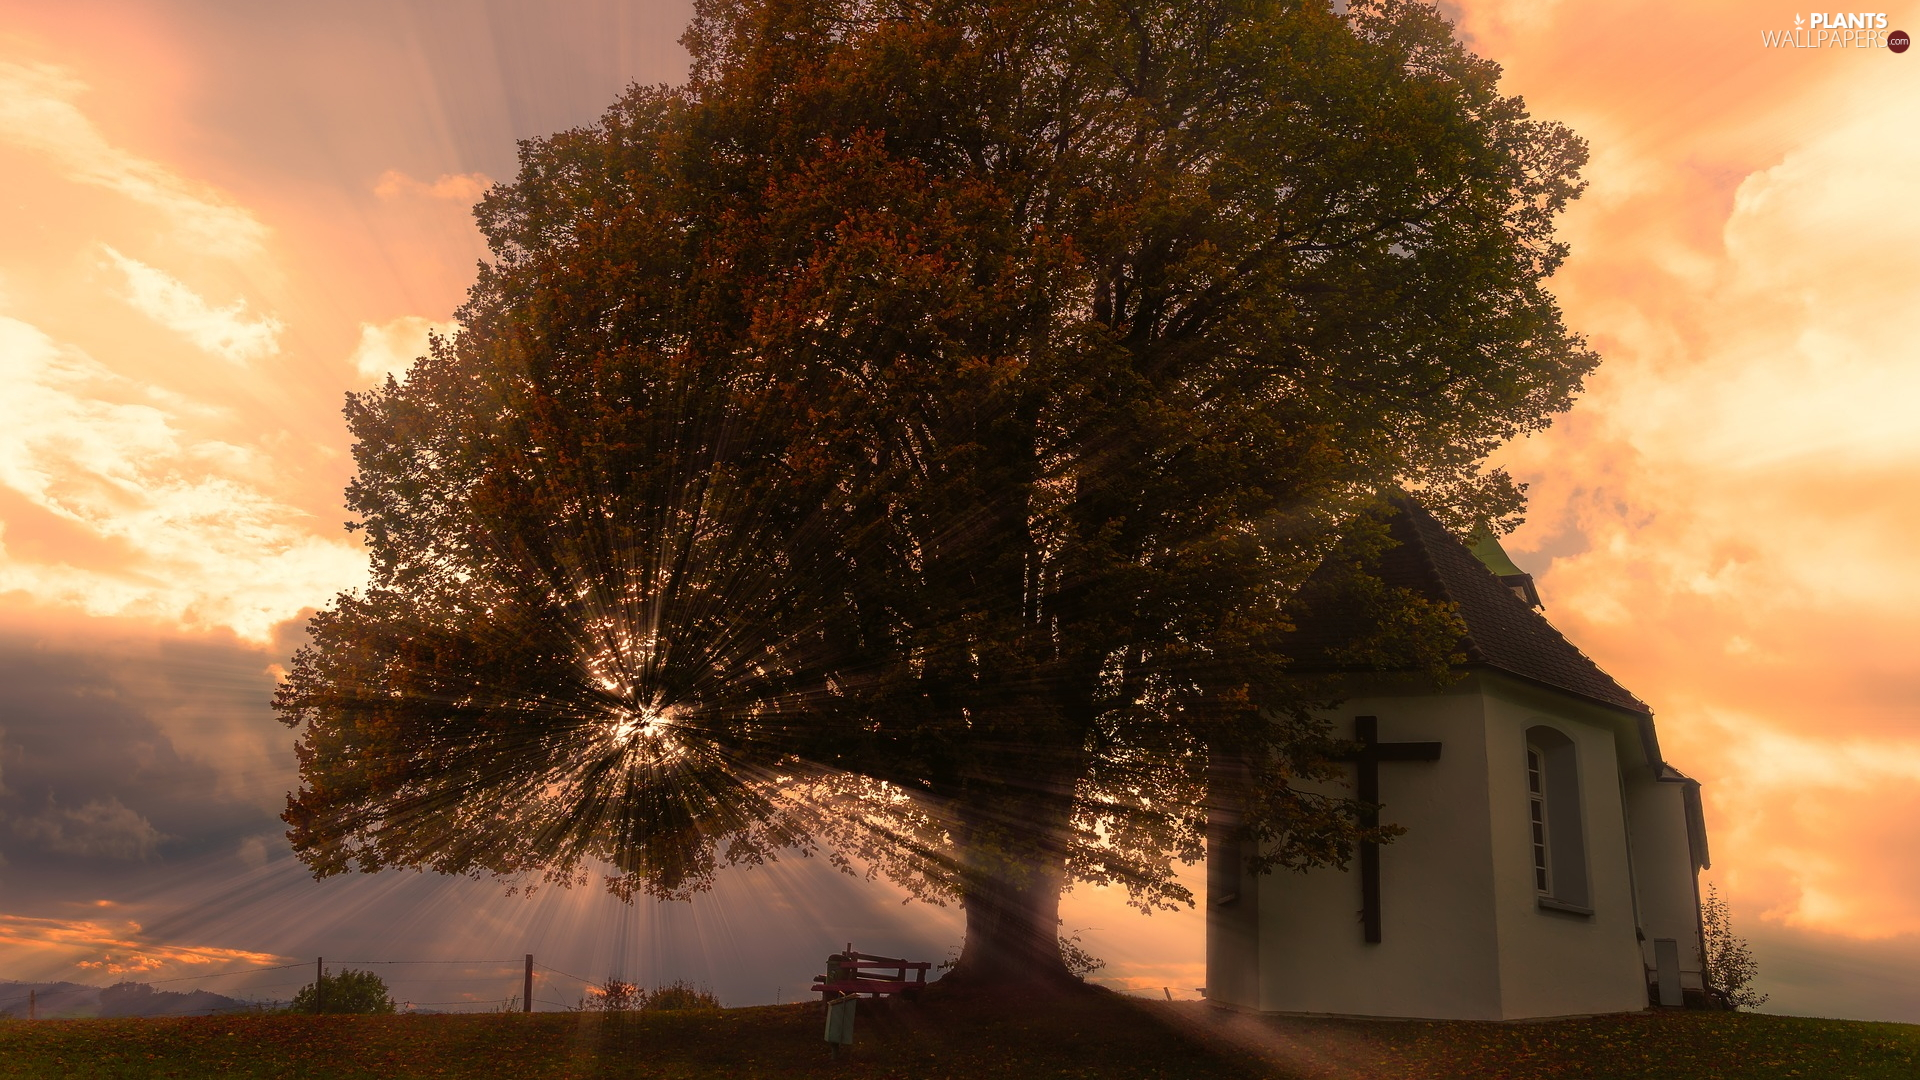 chapel, church, light breaking through sky, Bench, trees